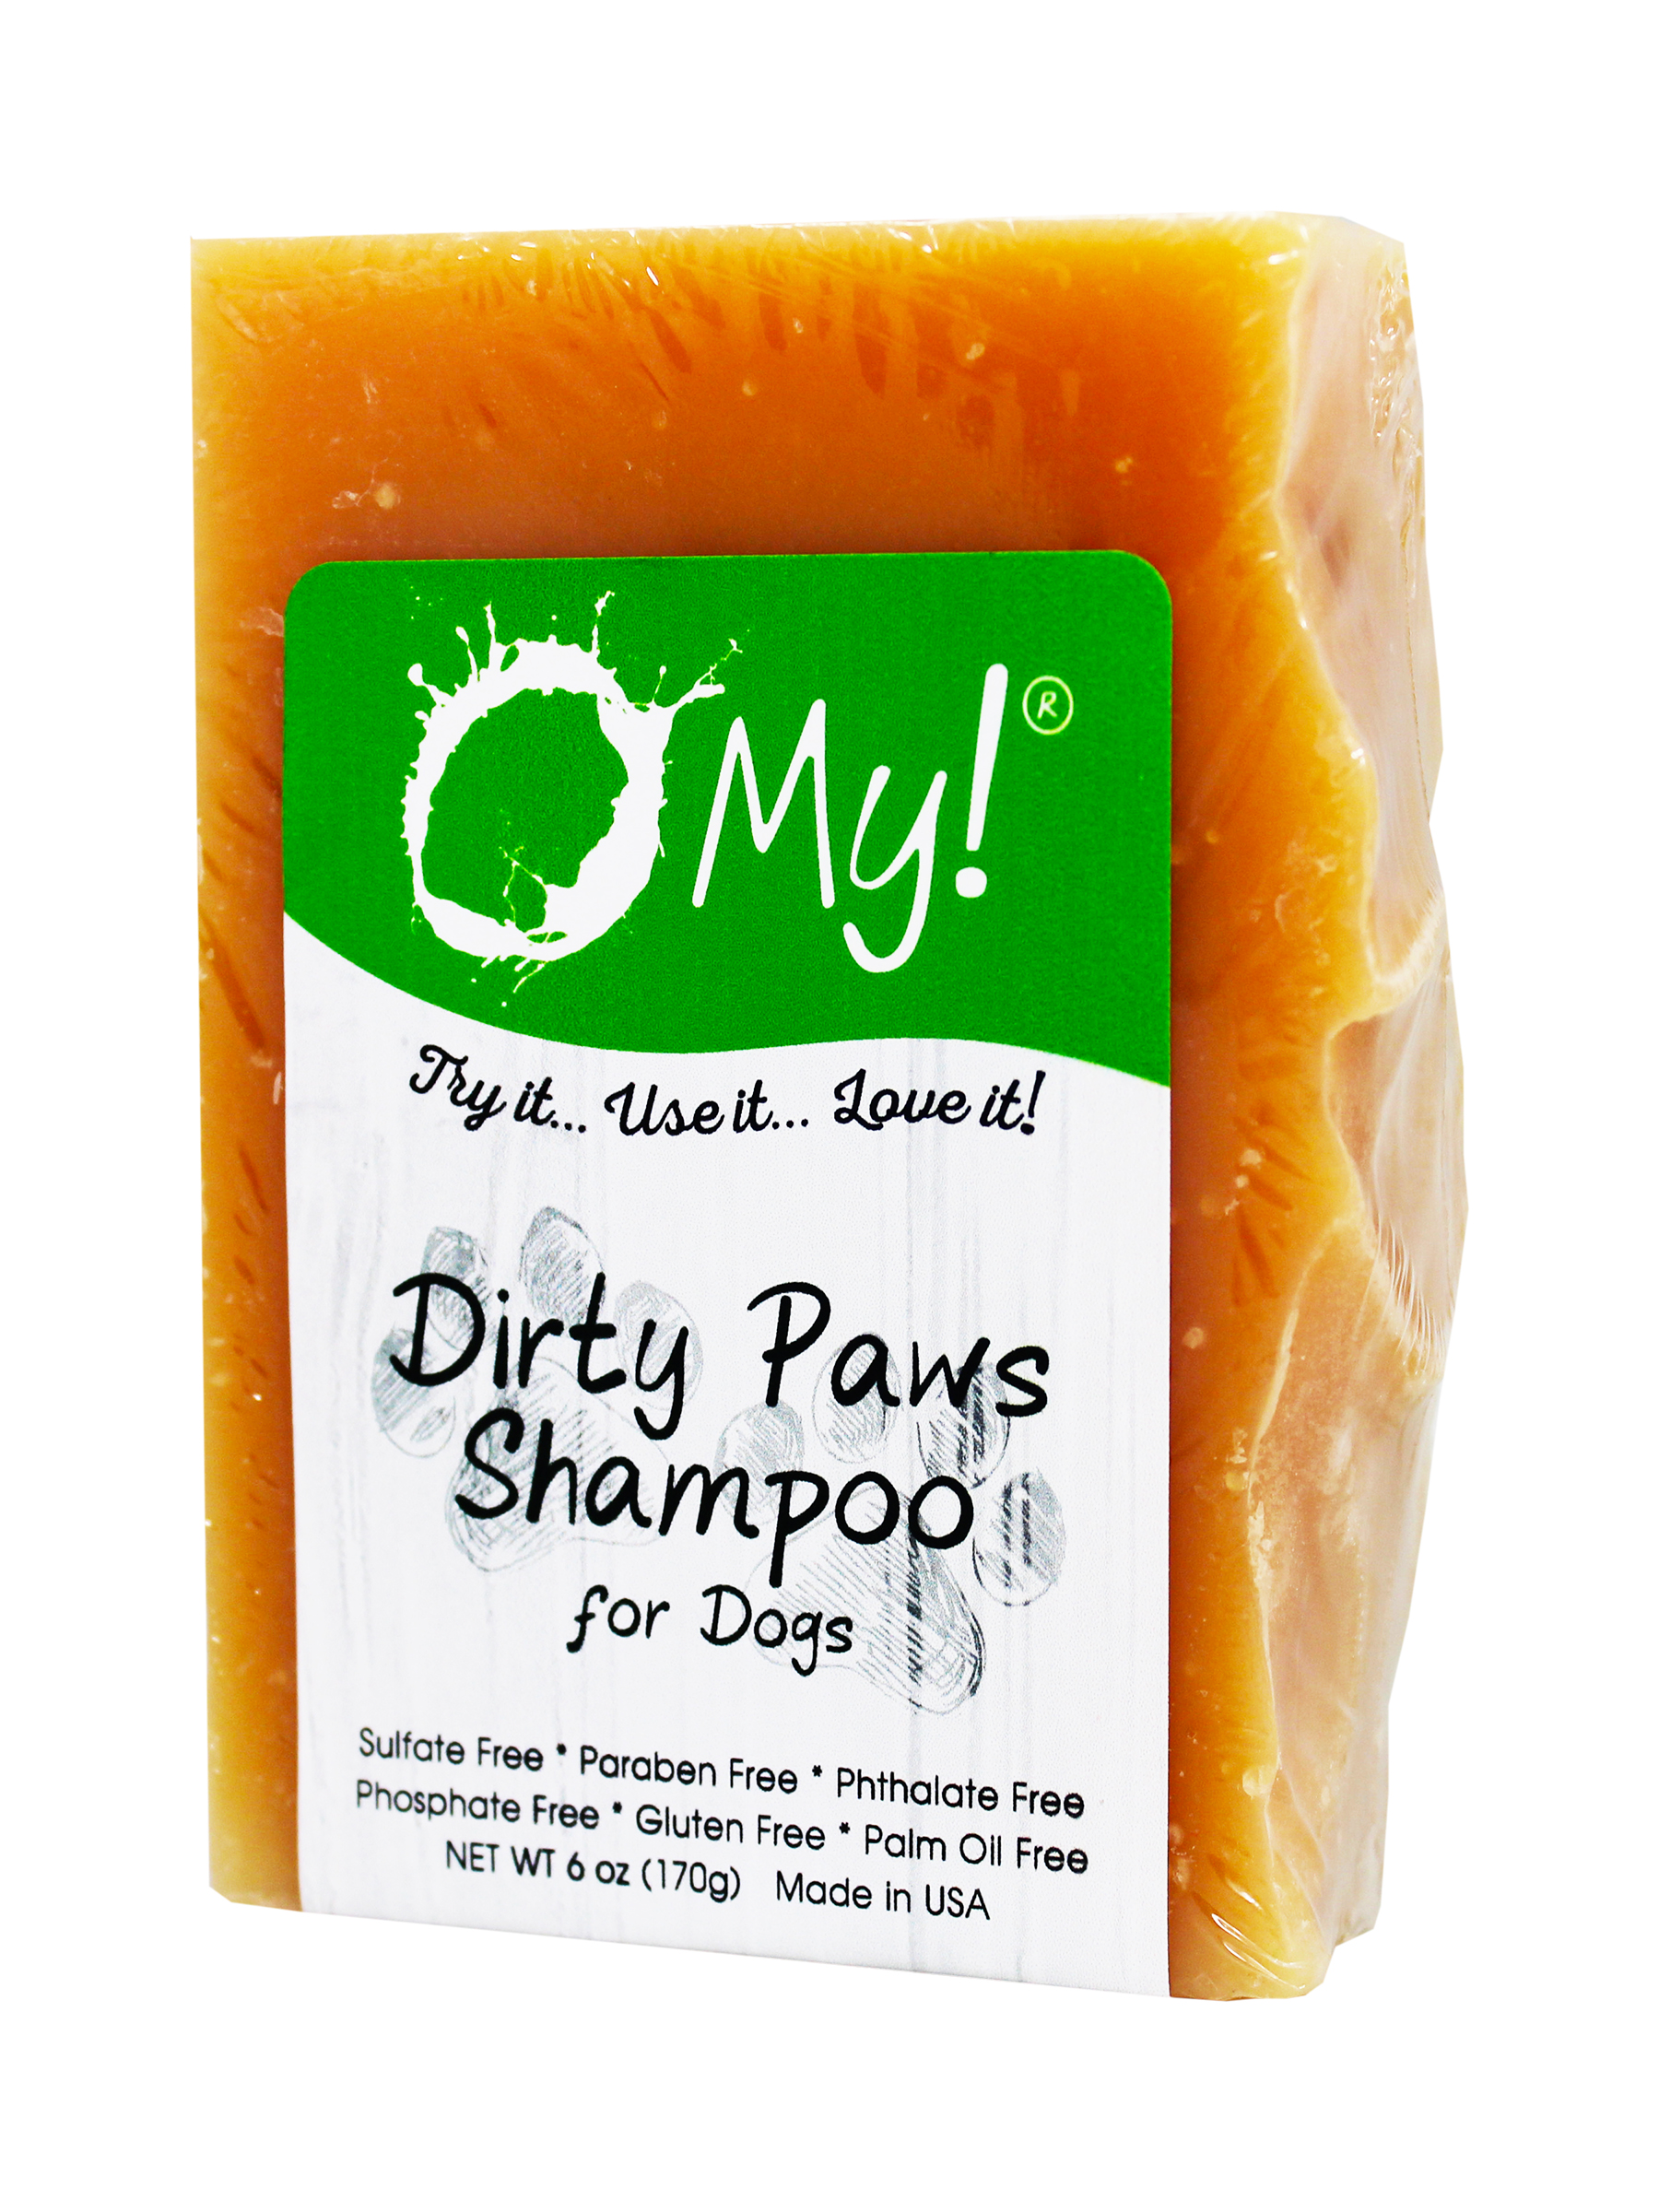 O My! Goat Milk Dog Shampoo Big 6z | Bundle of 3 | Made with Natural Farm Fresh Goat Milk and Five Essential Oils | Intended for Large Dogs | Paraben Free | Leaping Bunny Certified | Handmade in USA